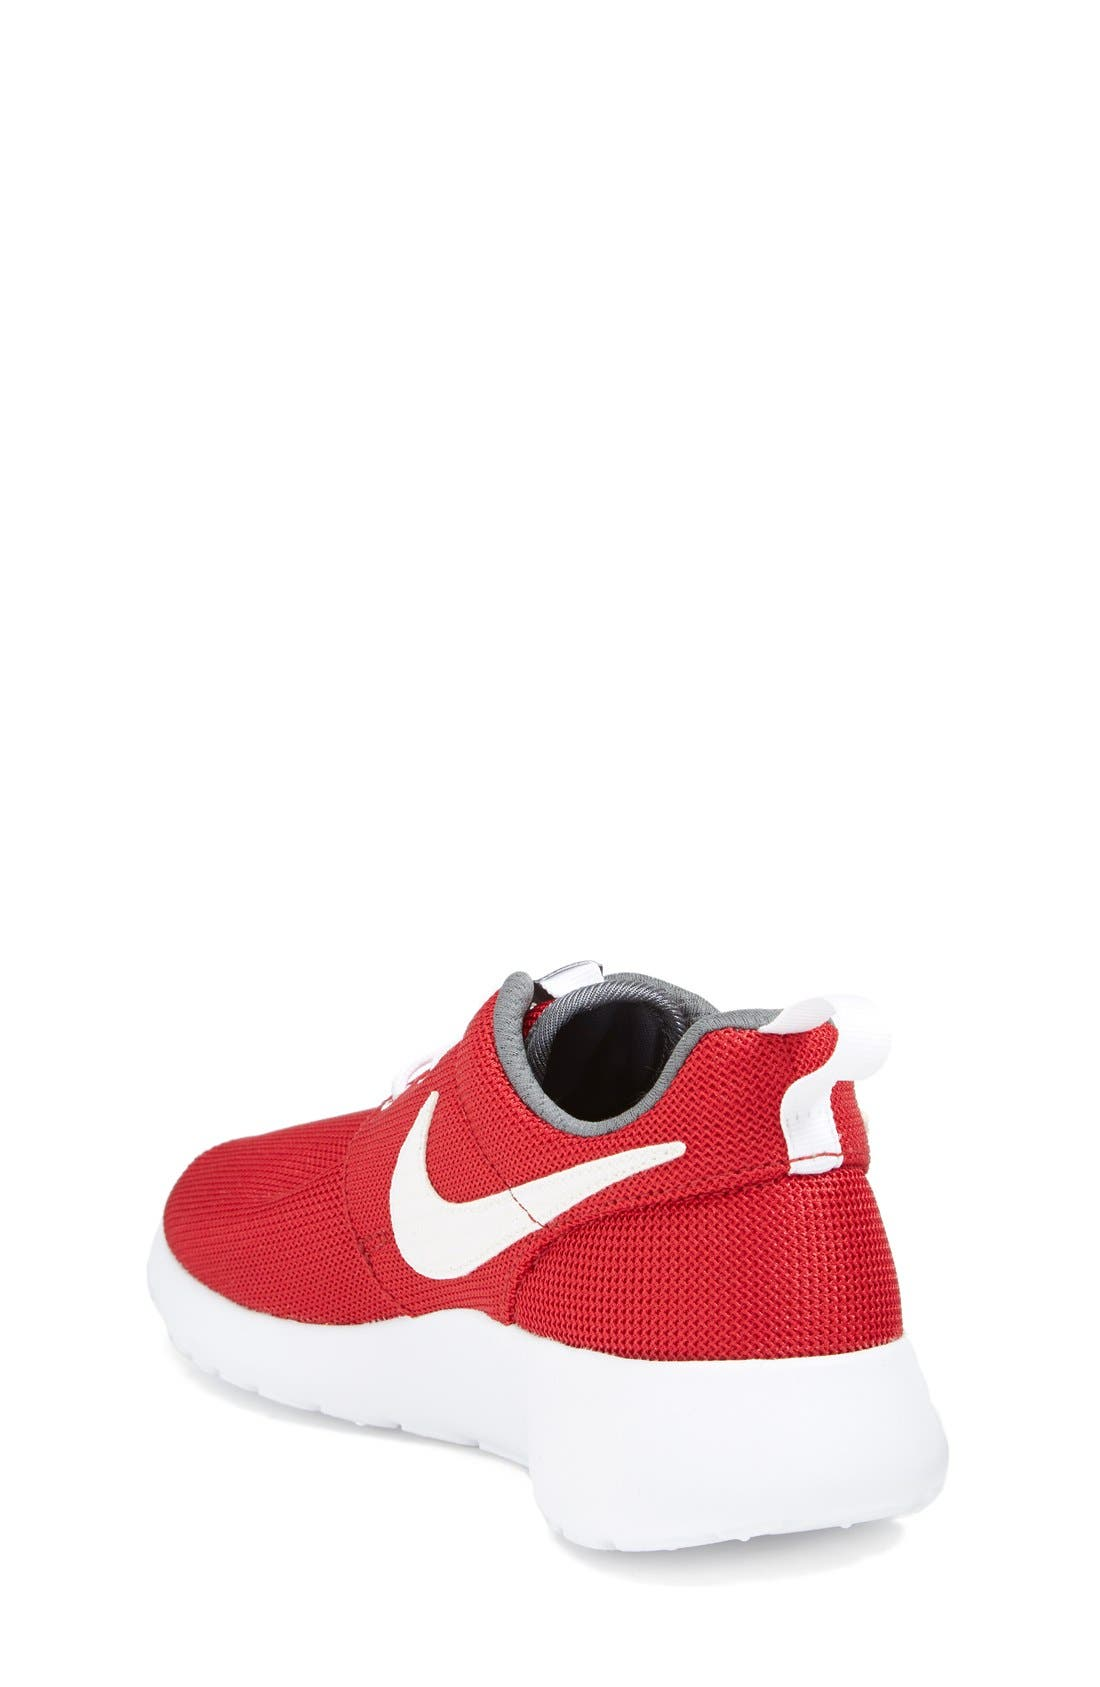 'Roshe Run' Sneaker,                             Alternate thumbnail 99, color,